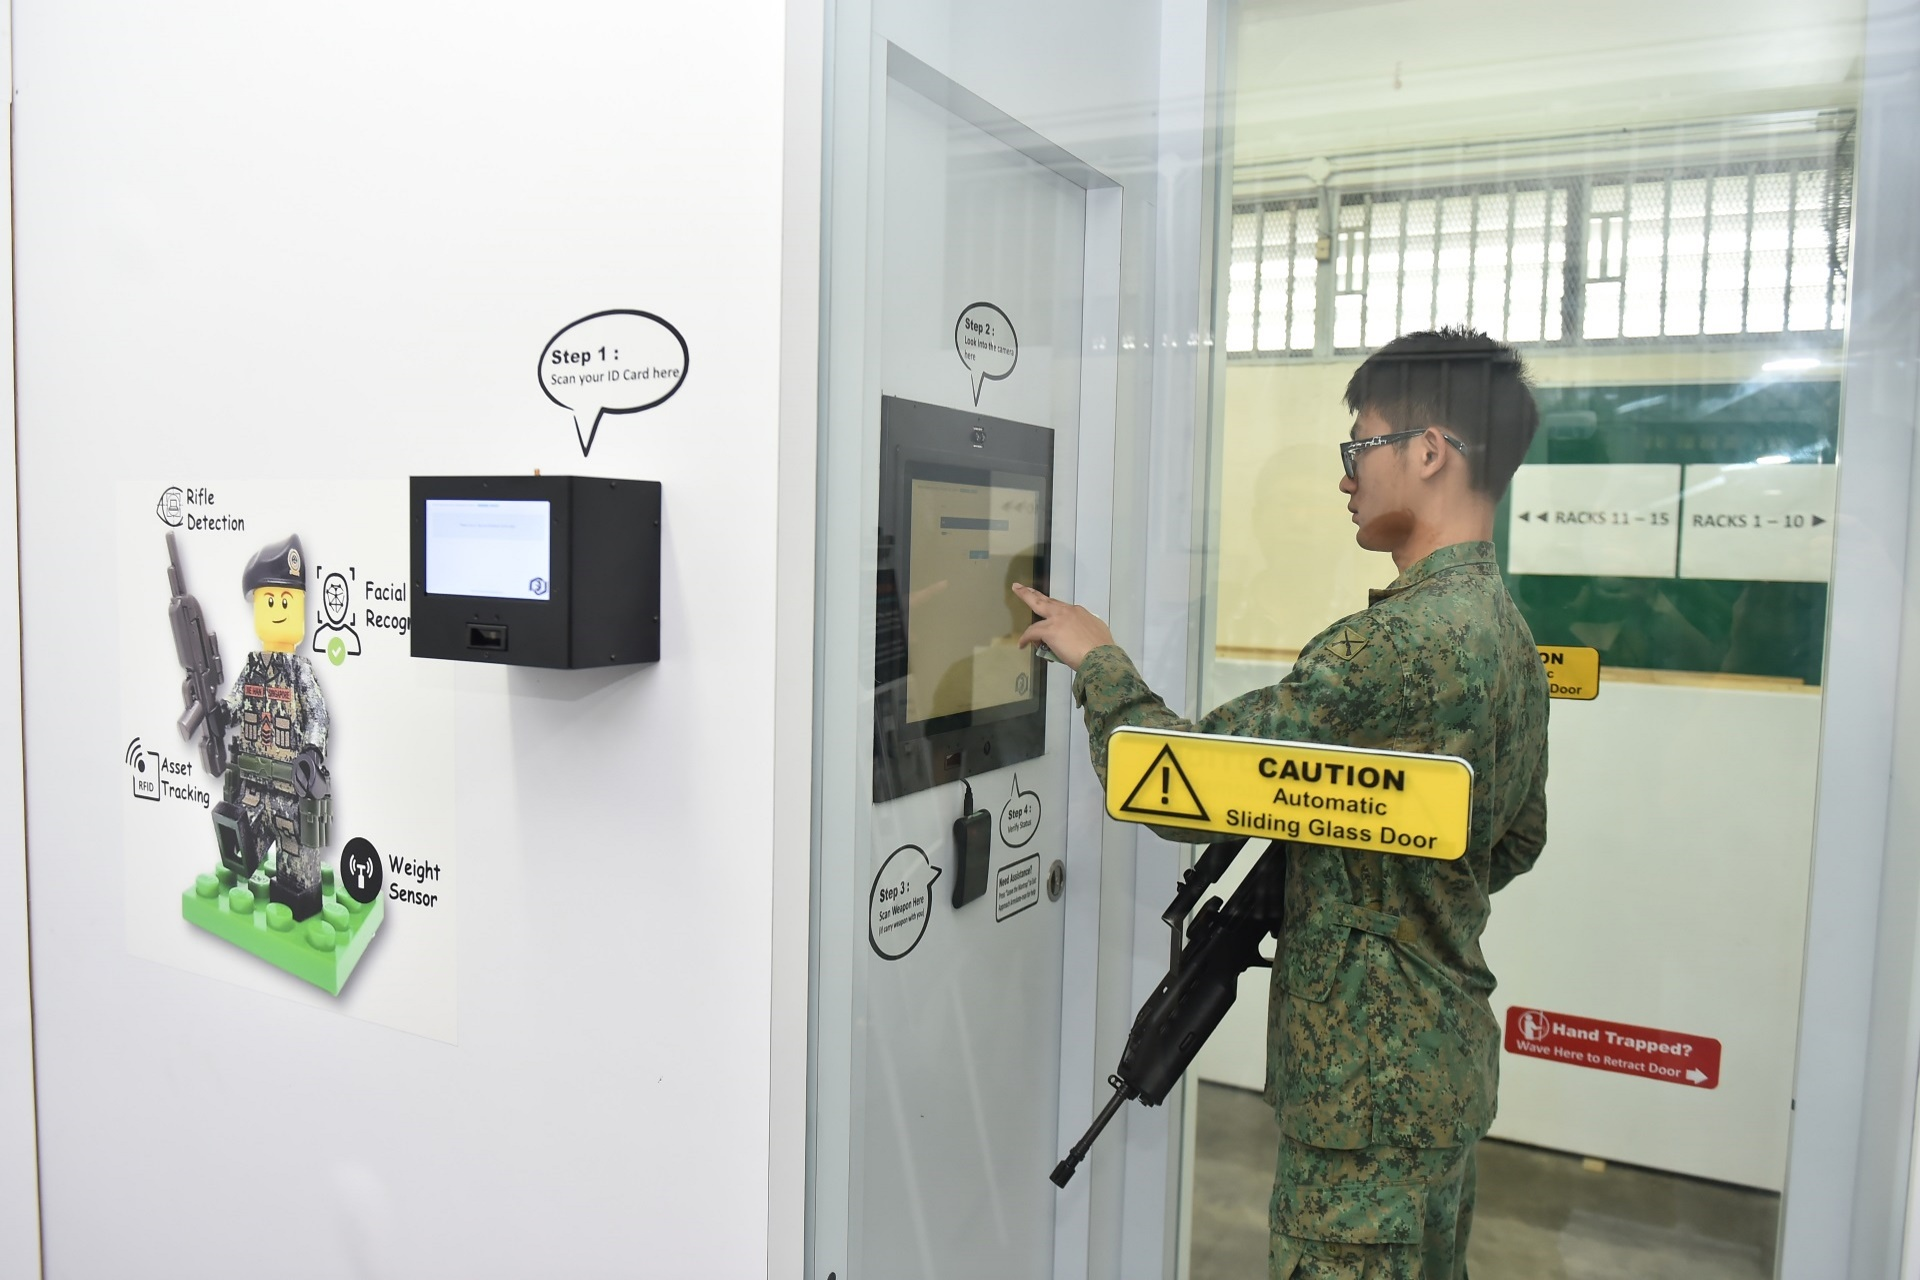 Smart camp, safety app: innovations to improve NS experience